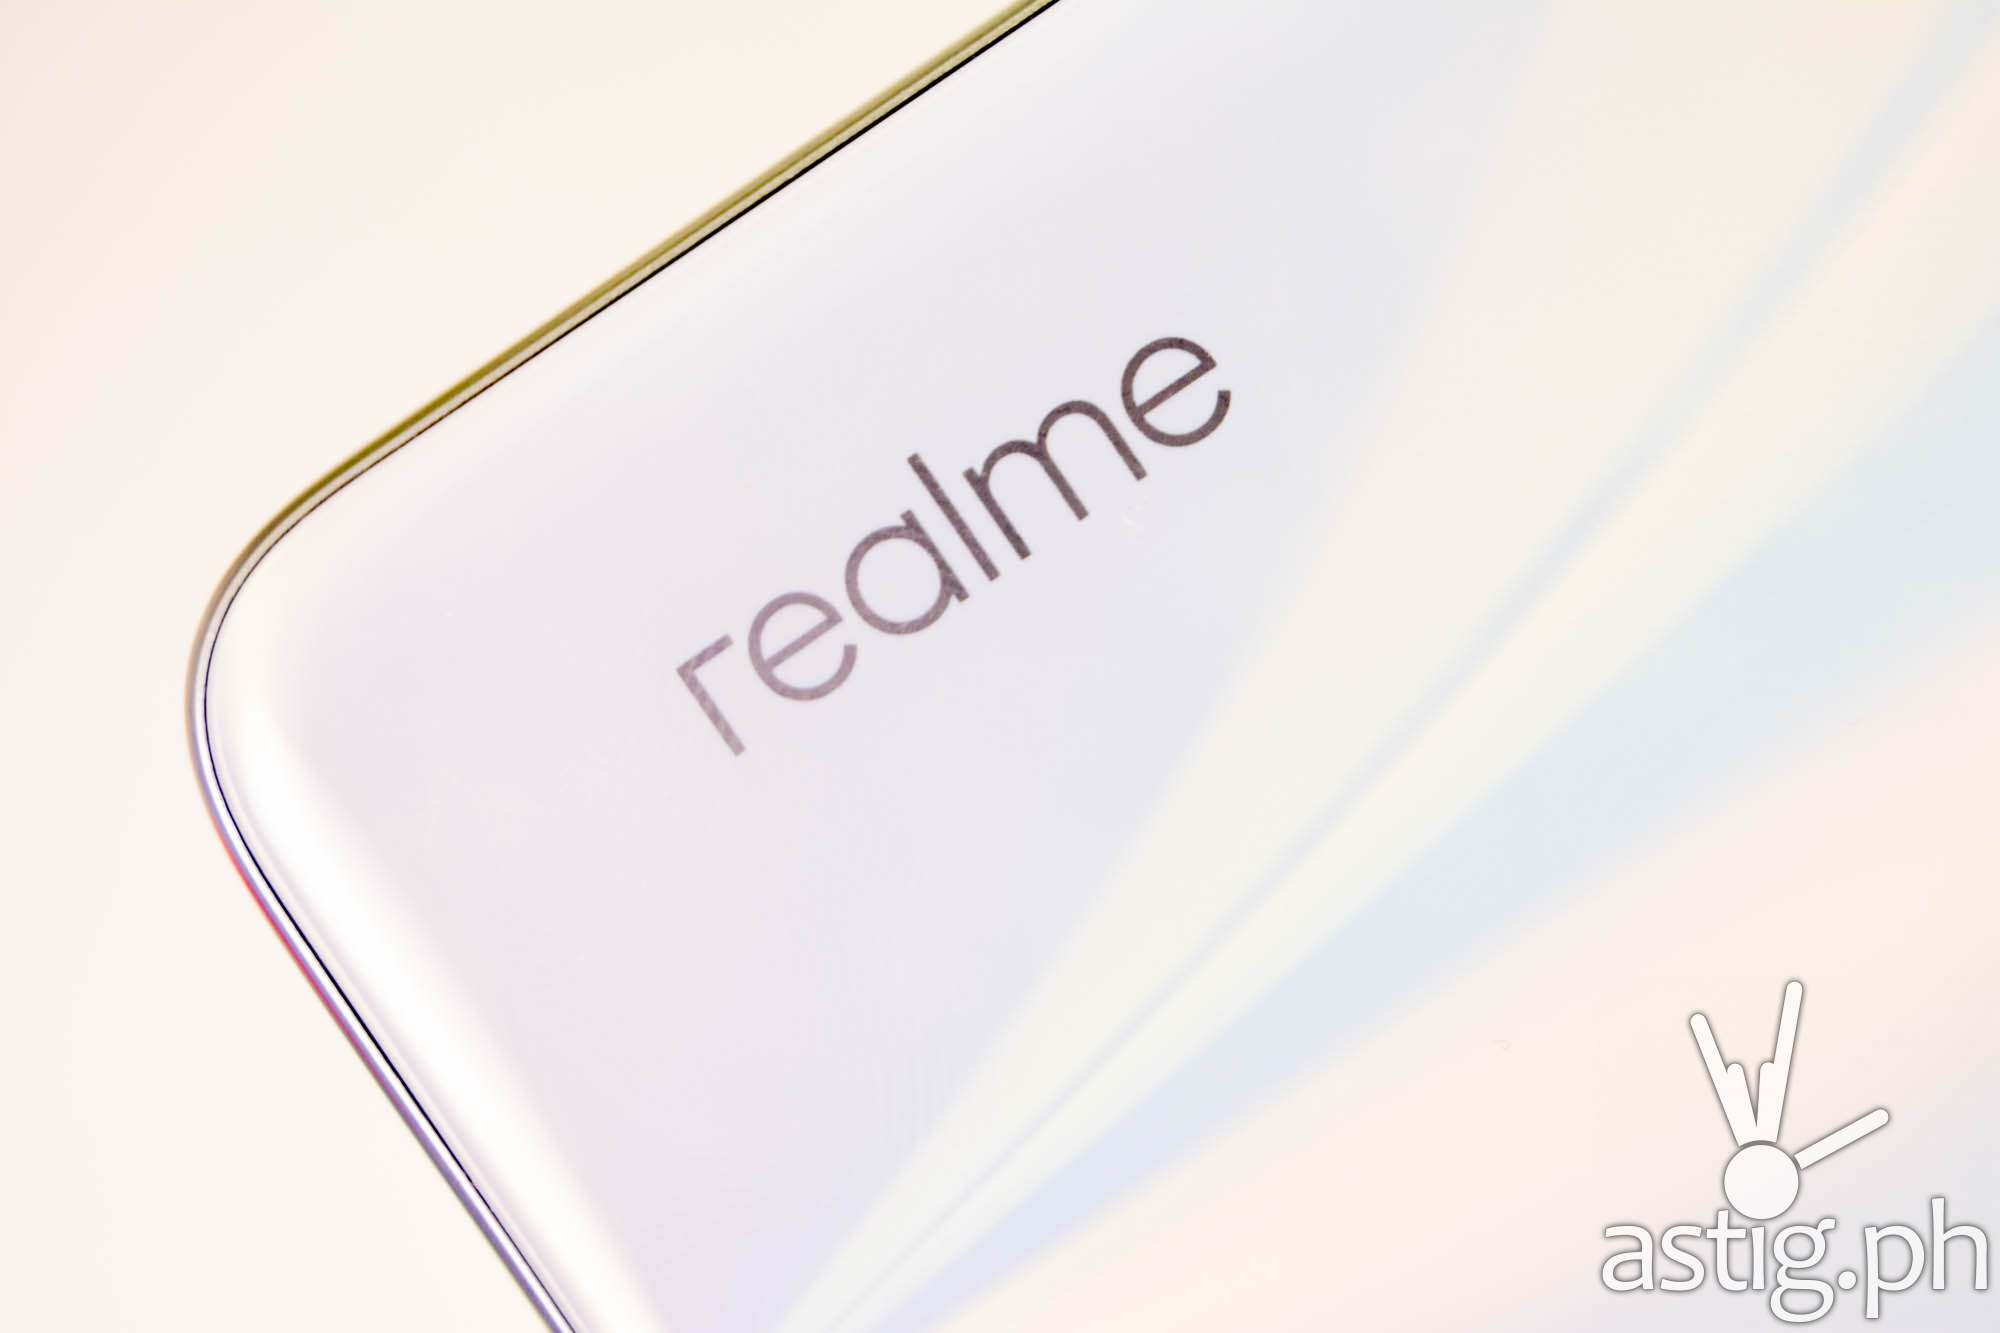 Rear design with realme logo - realme 6 (Philippines)